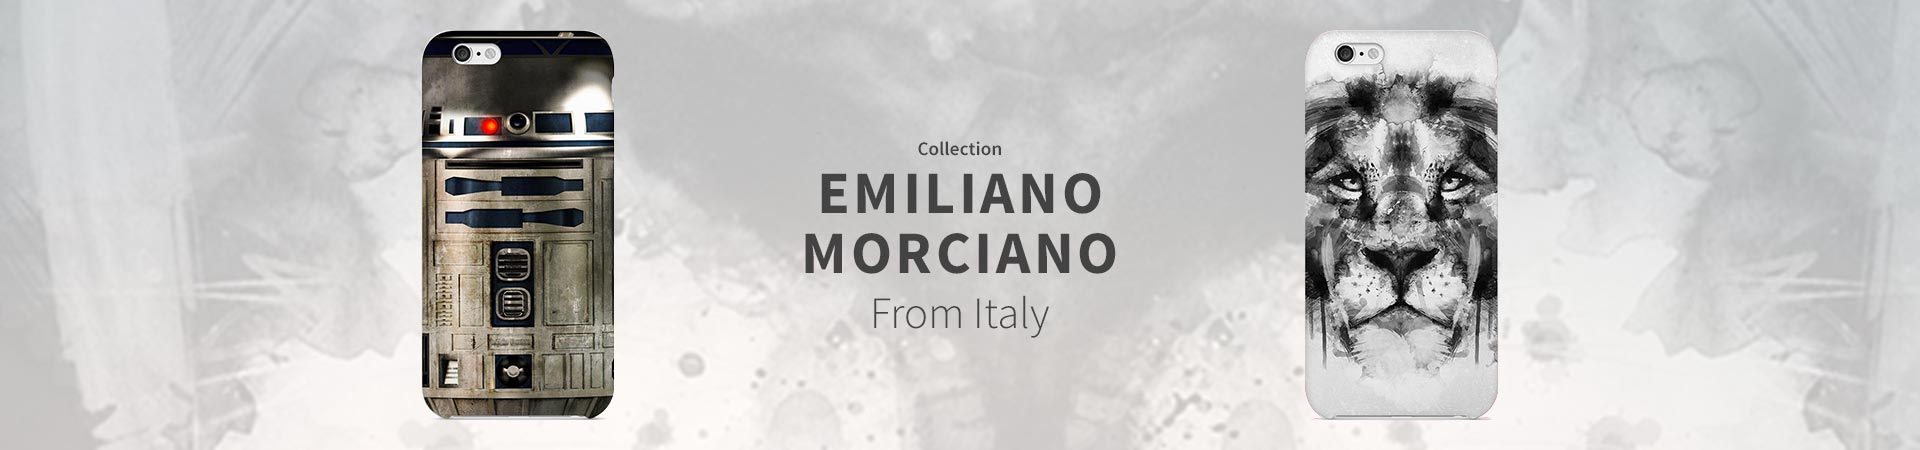 Collection Emiliano Morciano